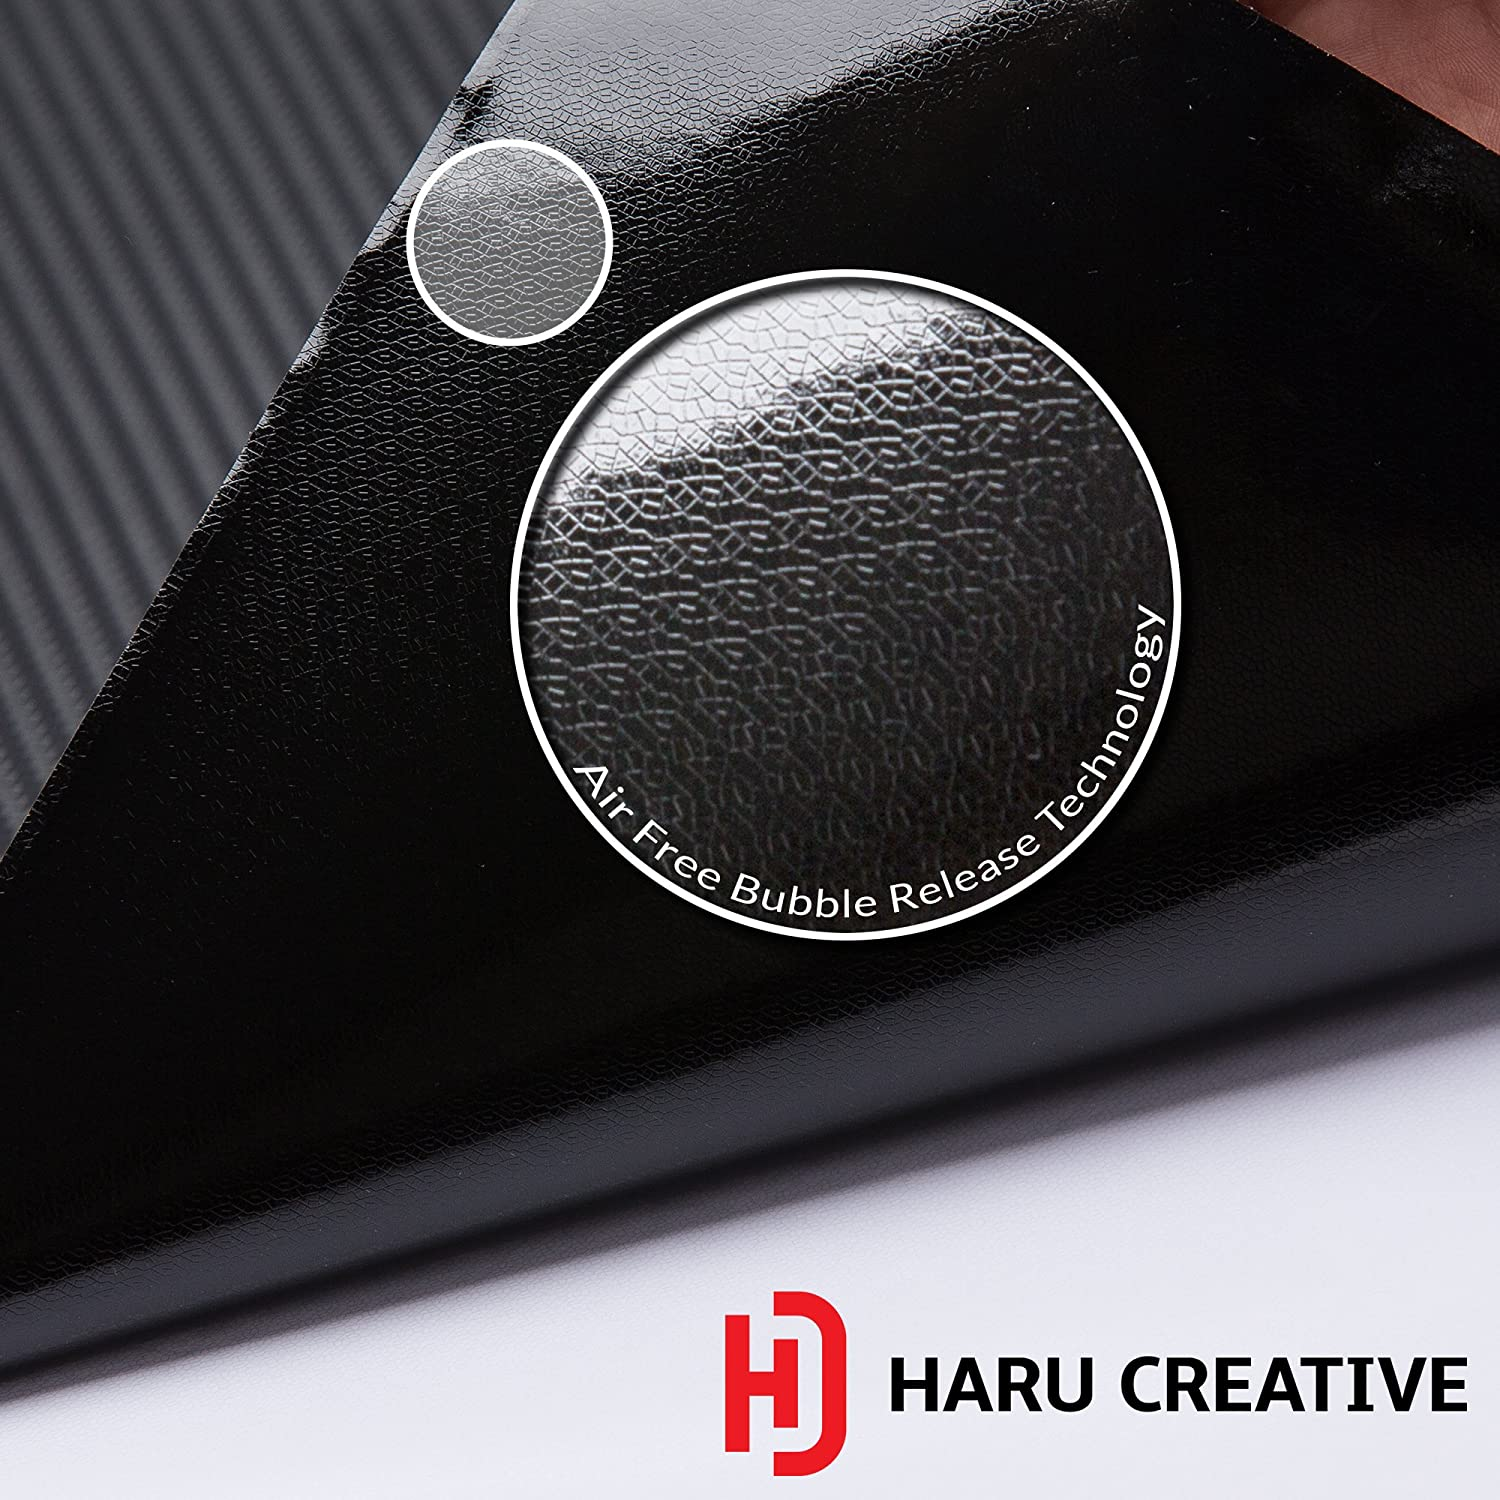 Haru Creative - Matte Black Fender Side Door Emblem Letter Overlay Vinyl Decal Sticker Compatible Fits Ford F150 F-150 2015 2016 2017 2018